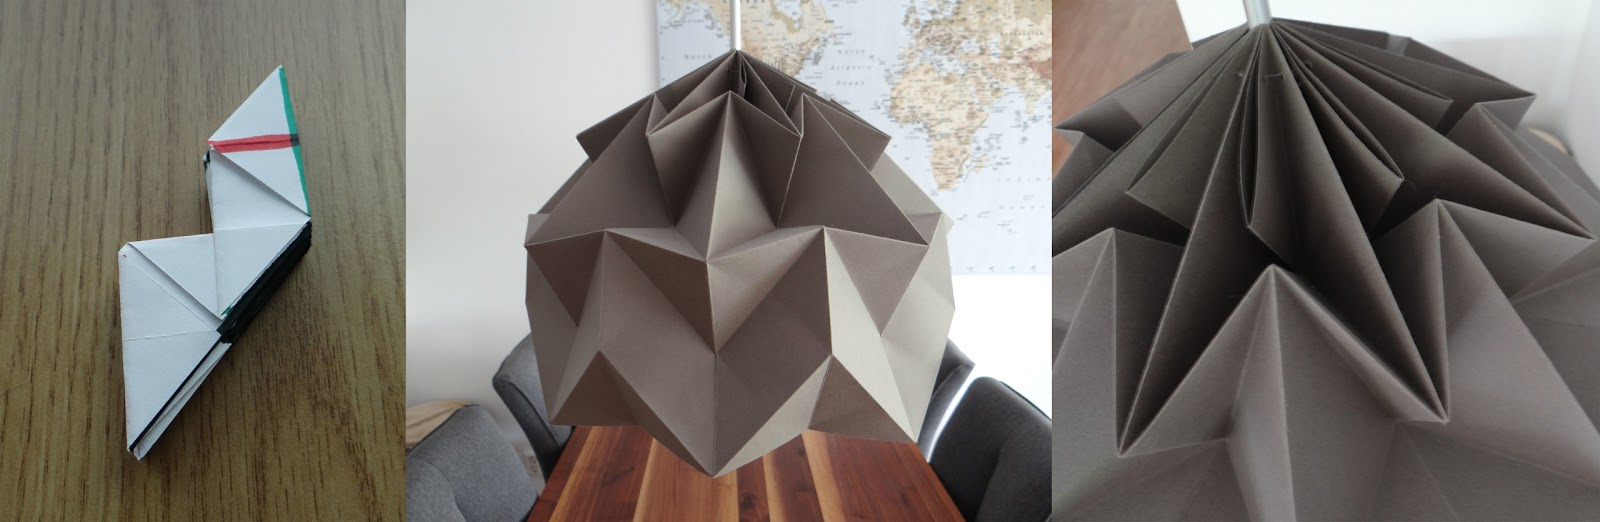 Creating my own lampshades based on the origami magic ball mostly creating my own lampshades based on the origami magic ball aloadofball